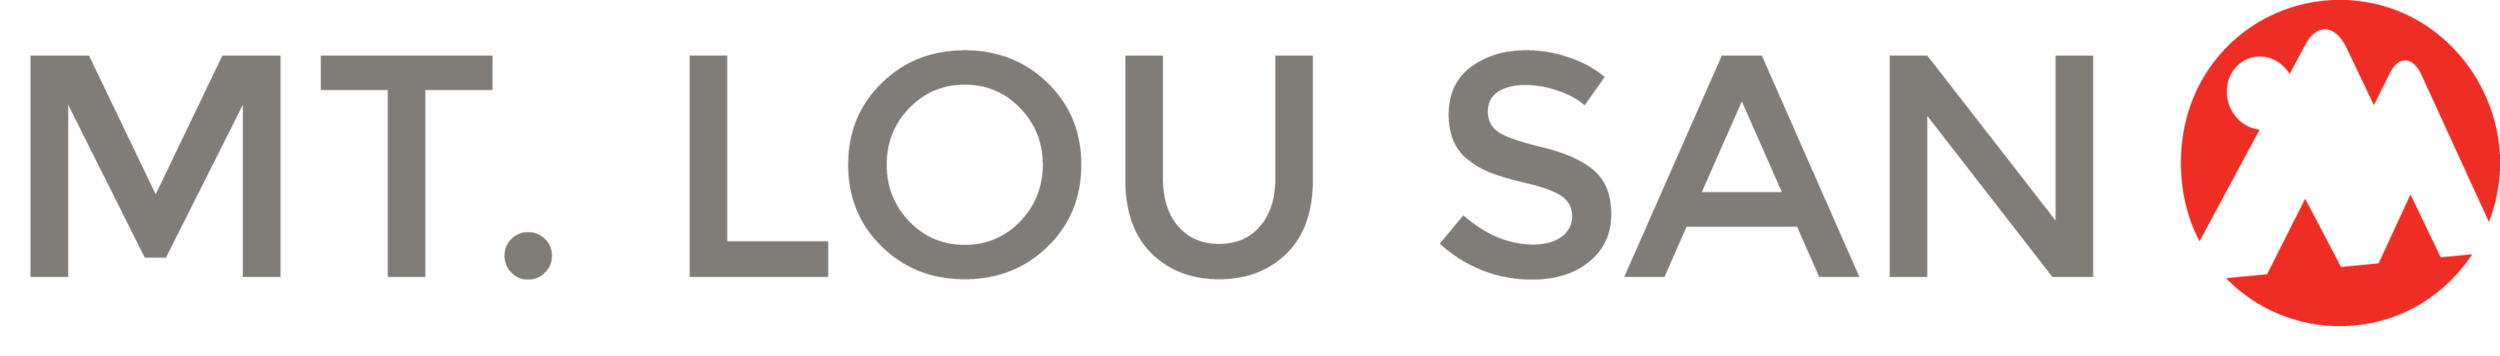 new_logo_small.png